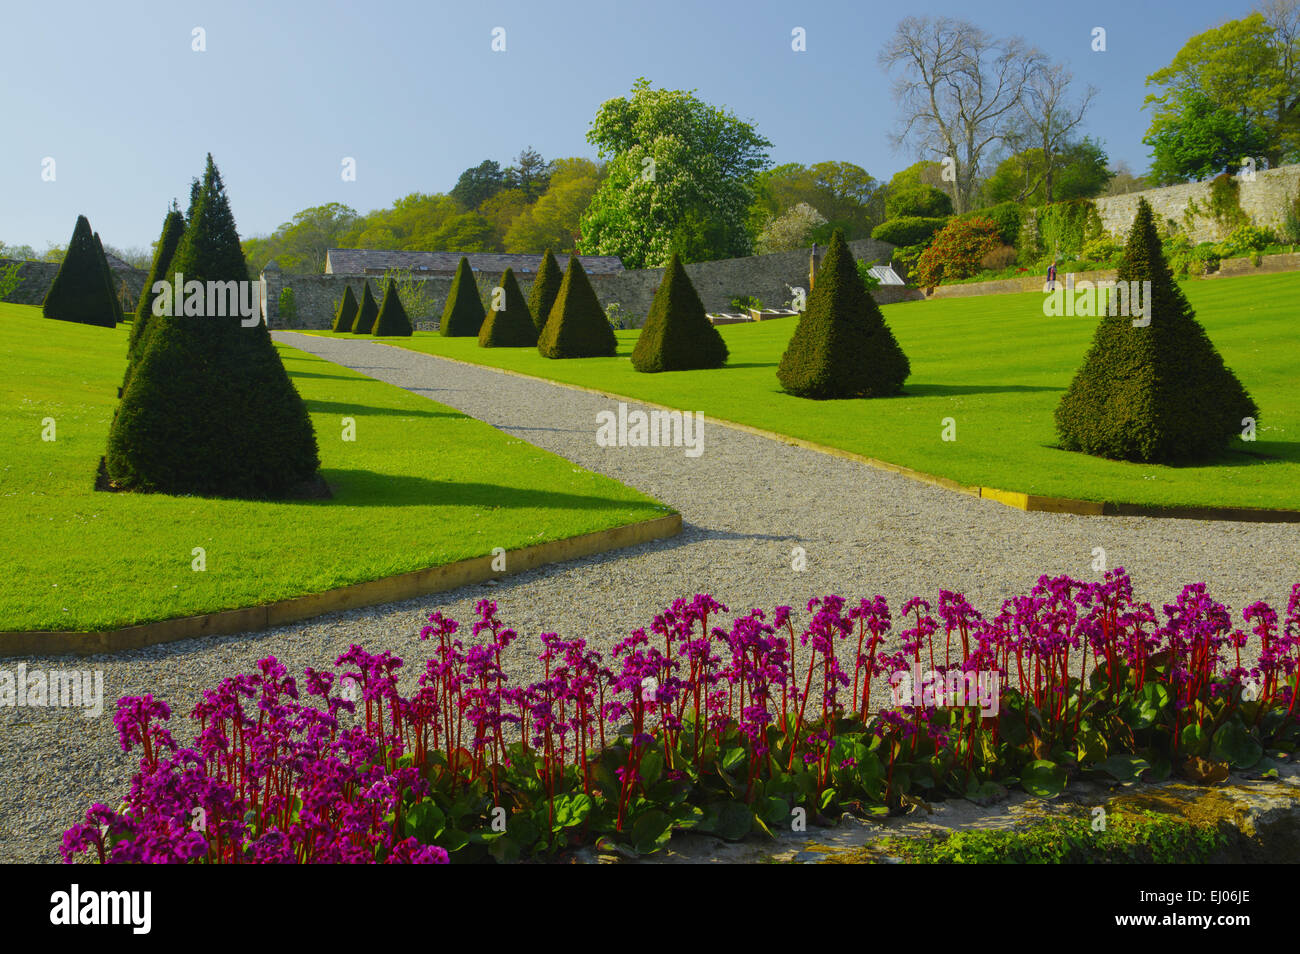 Garden, Plas Cadnant, Menai Bridge, Anglesey, North West Wales - Stock Image